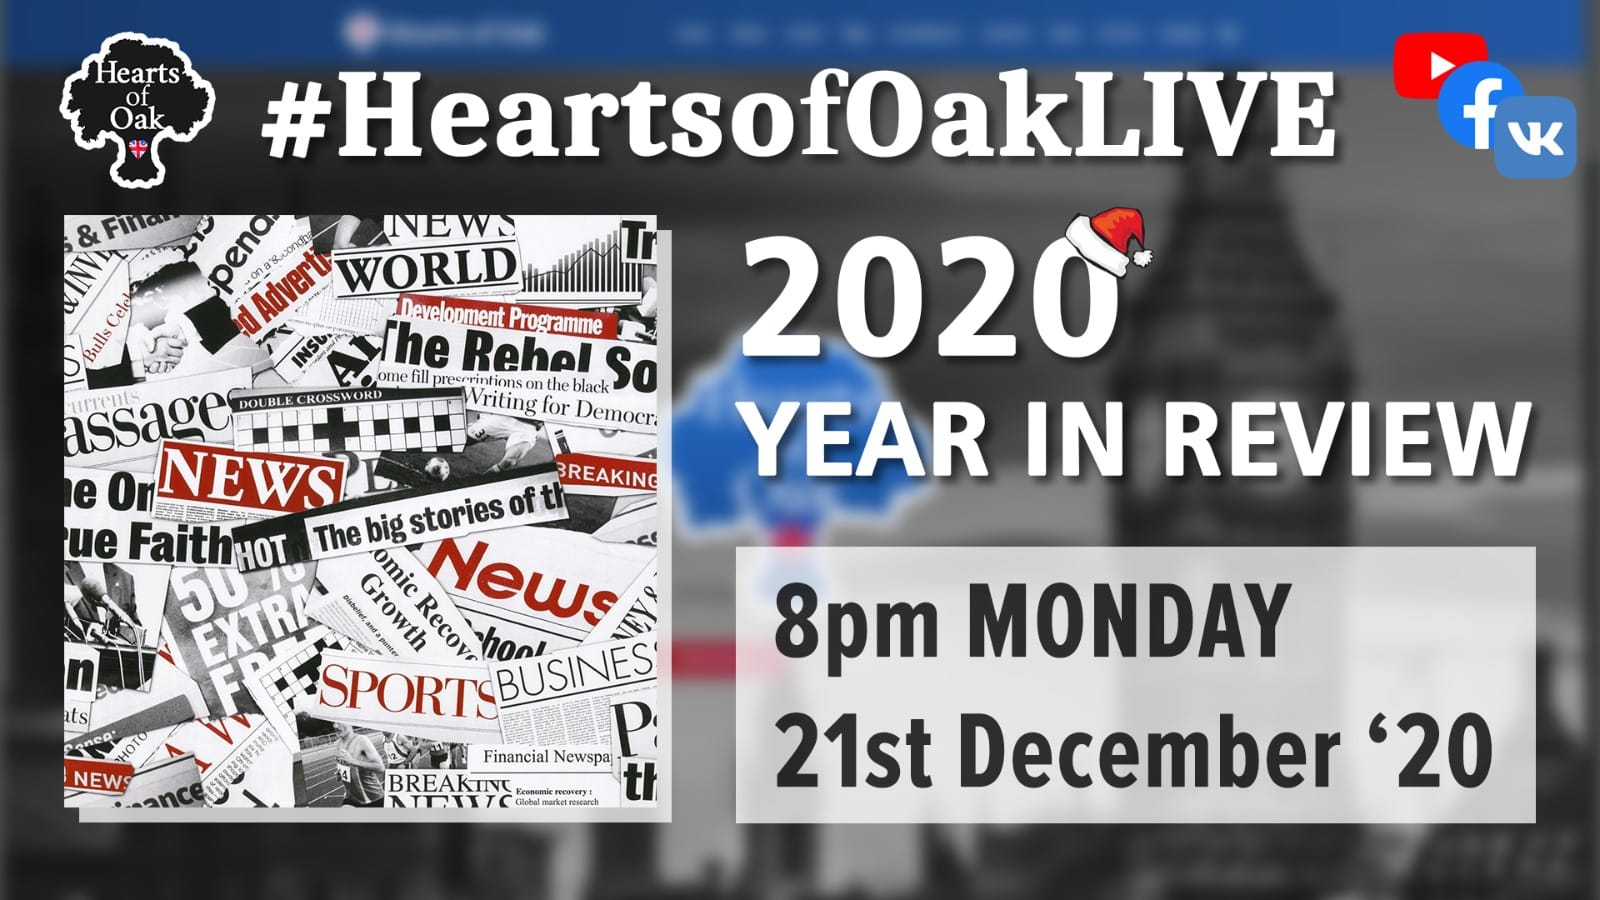 Hearts of Oak Year in review 2020